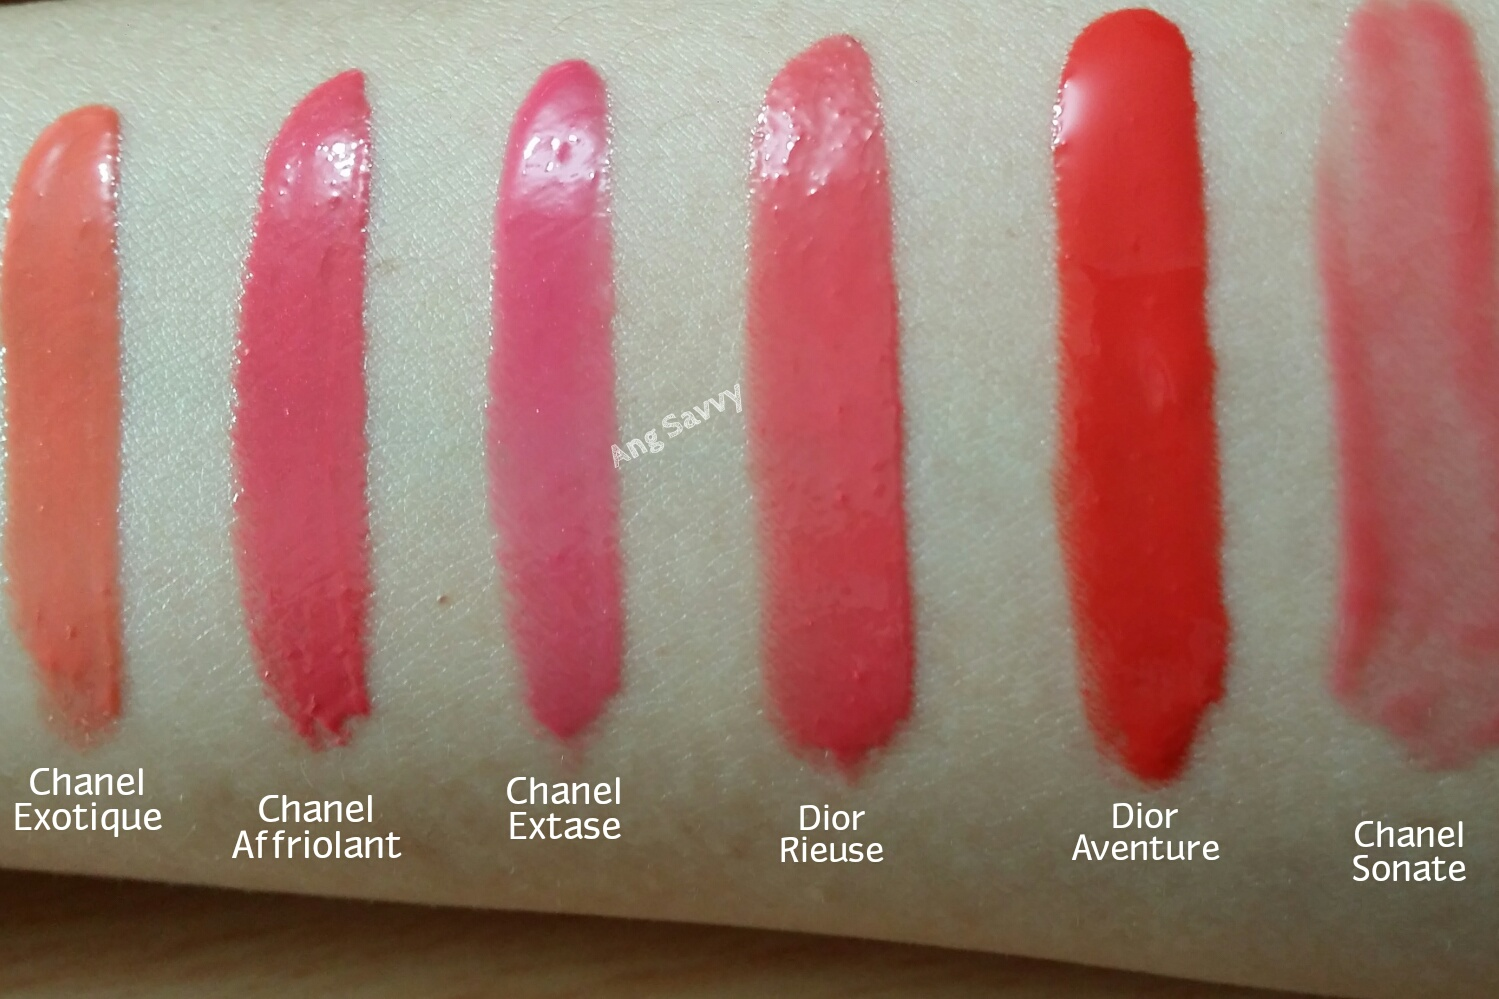 Chanel Rouge Allure Gloss 13 Affriolant Swatch